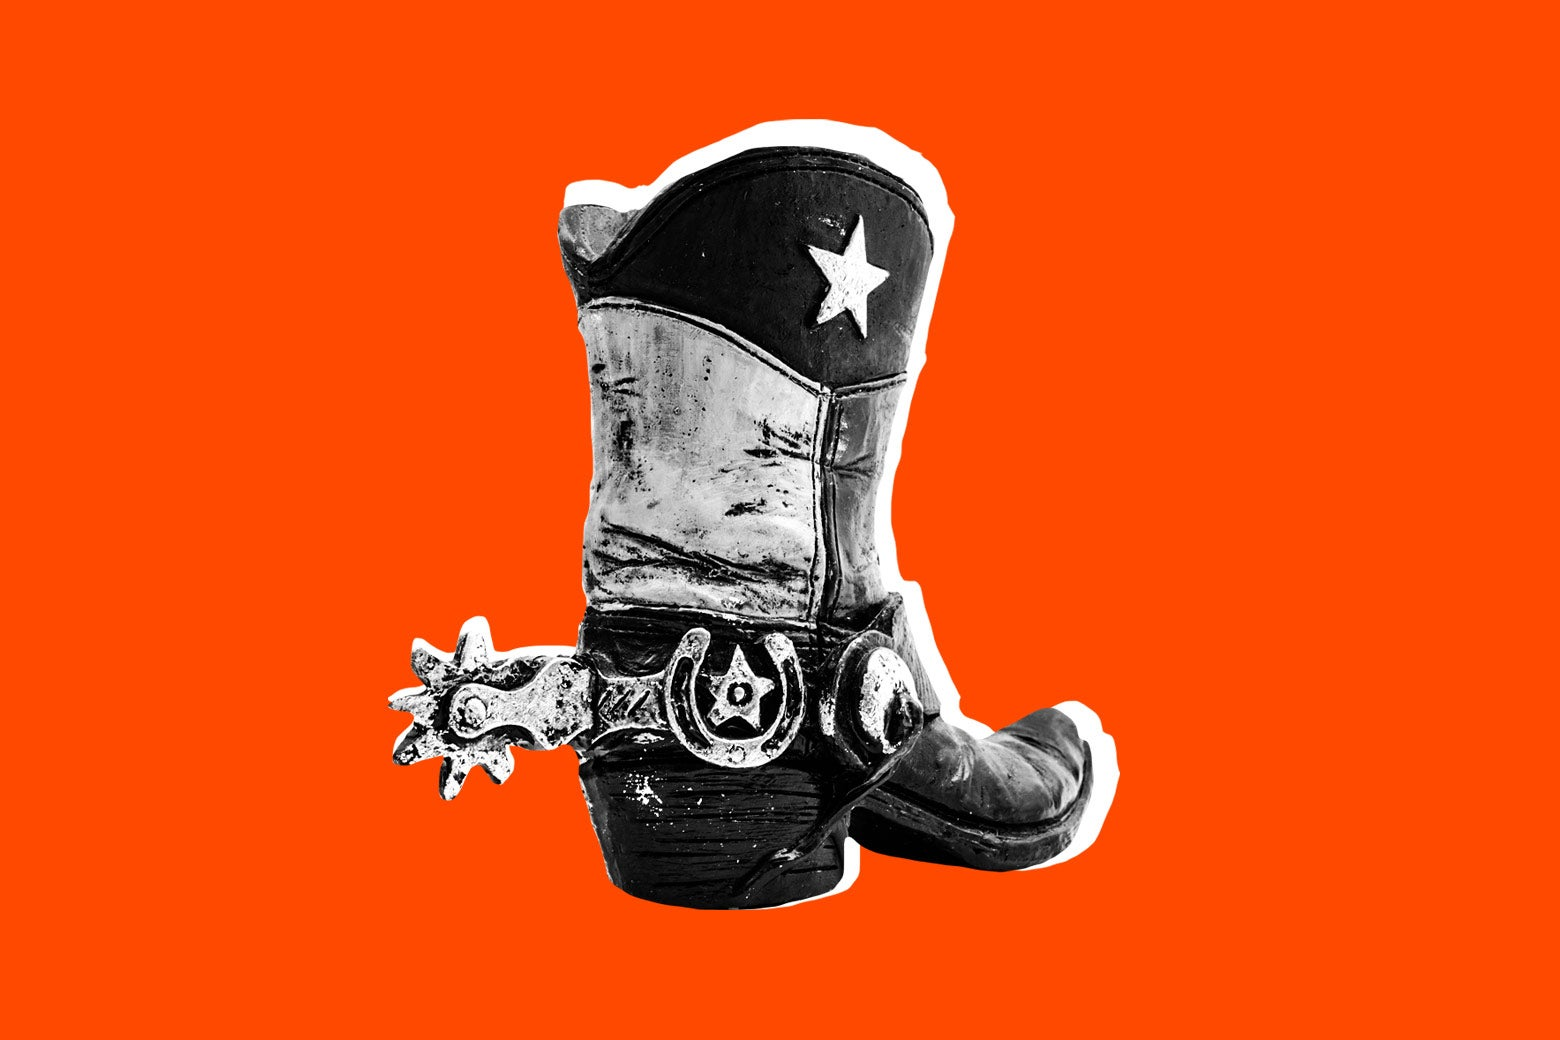 A Texas cowboy boot on a red background.